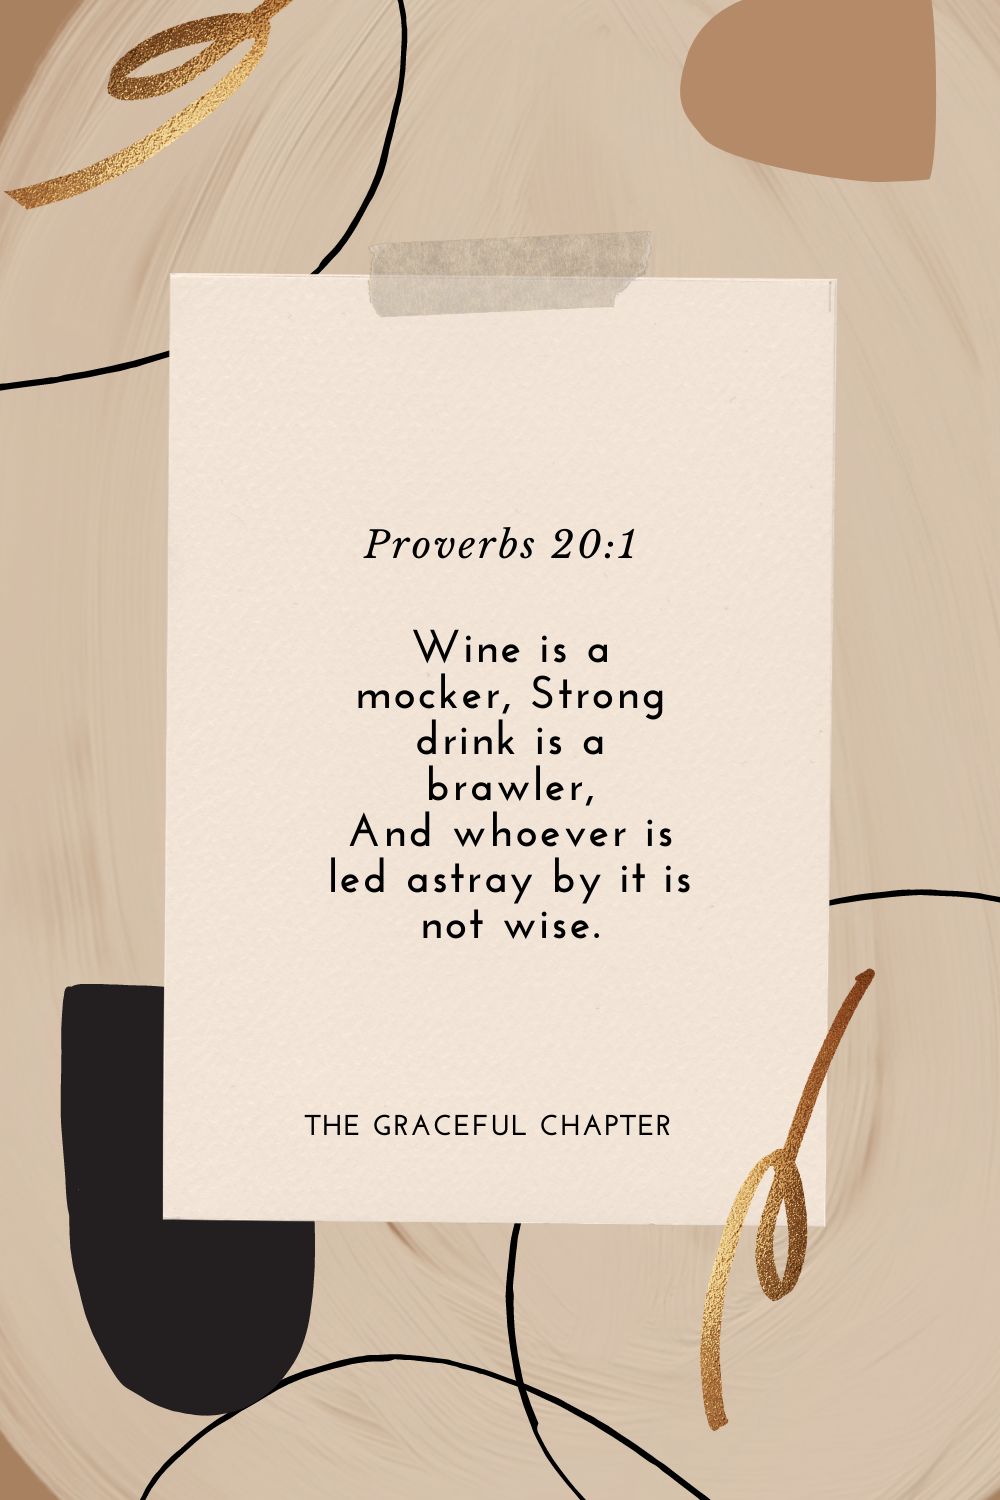 Wine is a mocker, Strong drink is a brawler, And whoever is led astray by it is not wise. Proverbs 20:1